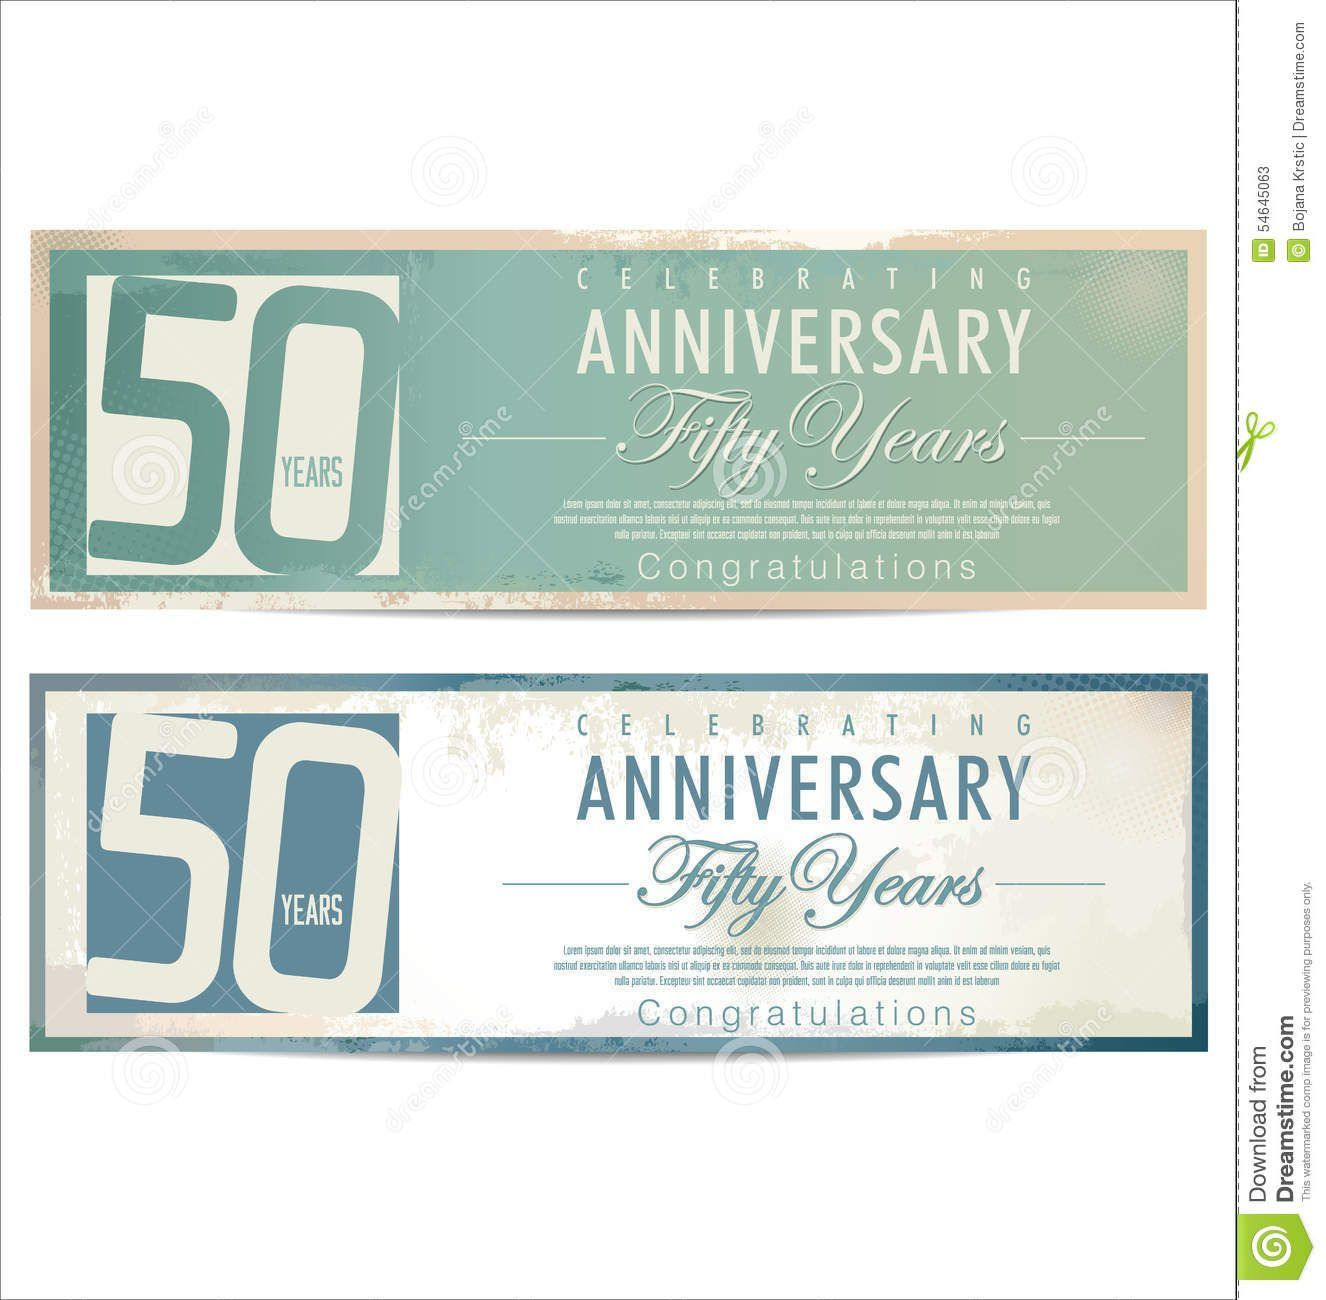 Carte invitation anniversaire adulte carte d invitation - Carte anniversaire adulte a imprimer ...